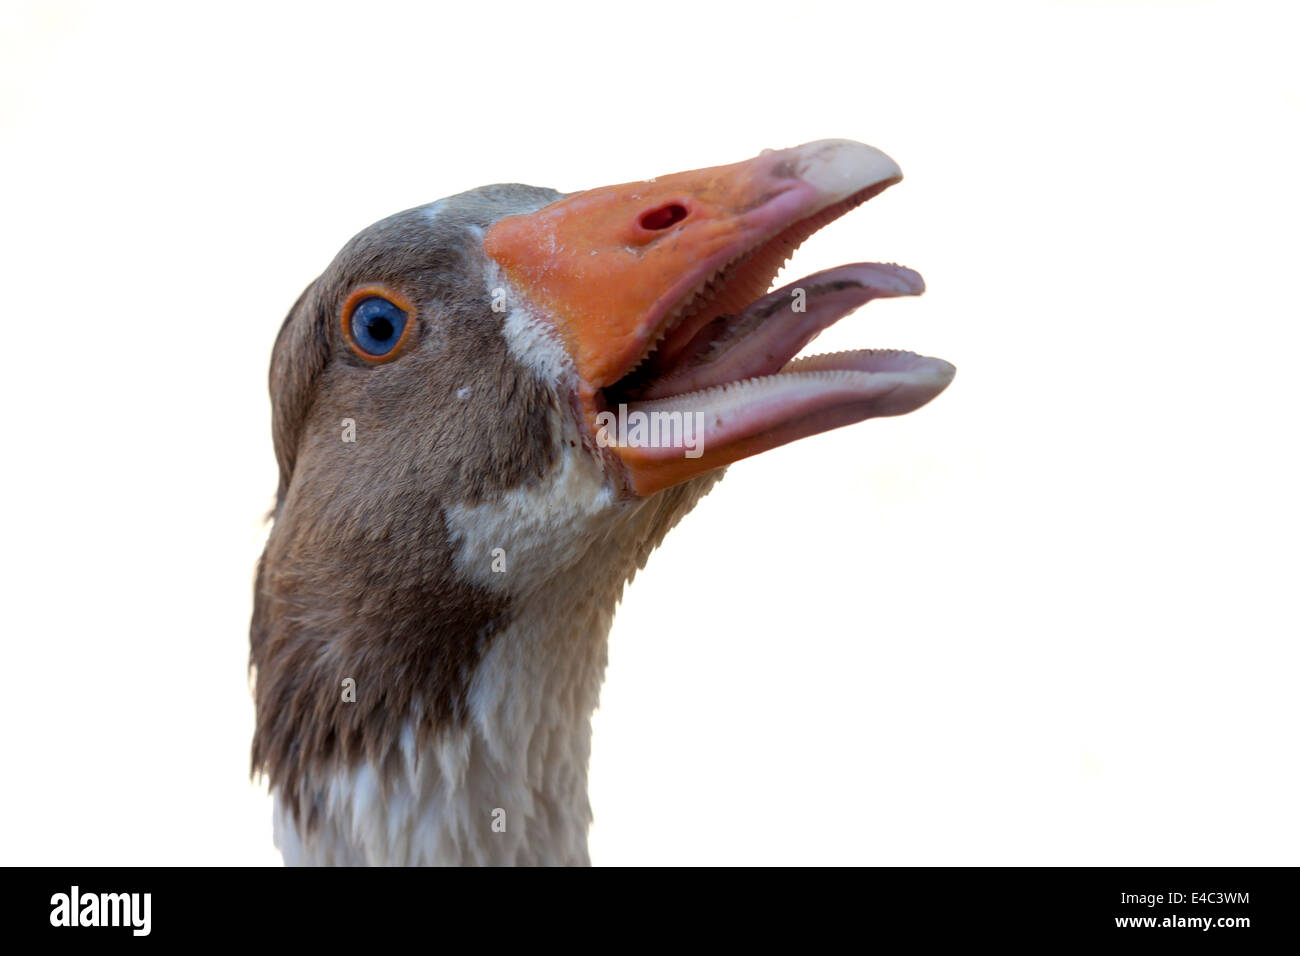 an angry goose on isolated white background - Stock Image